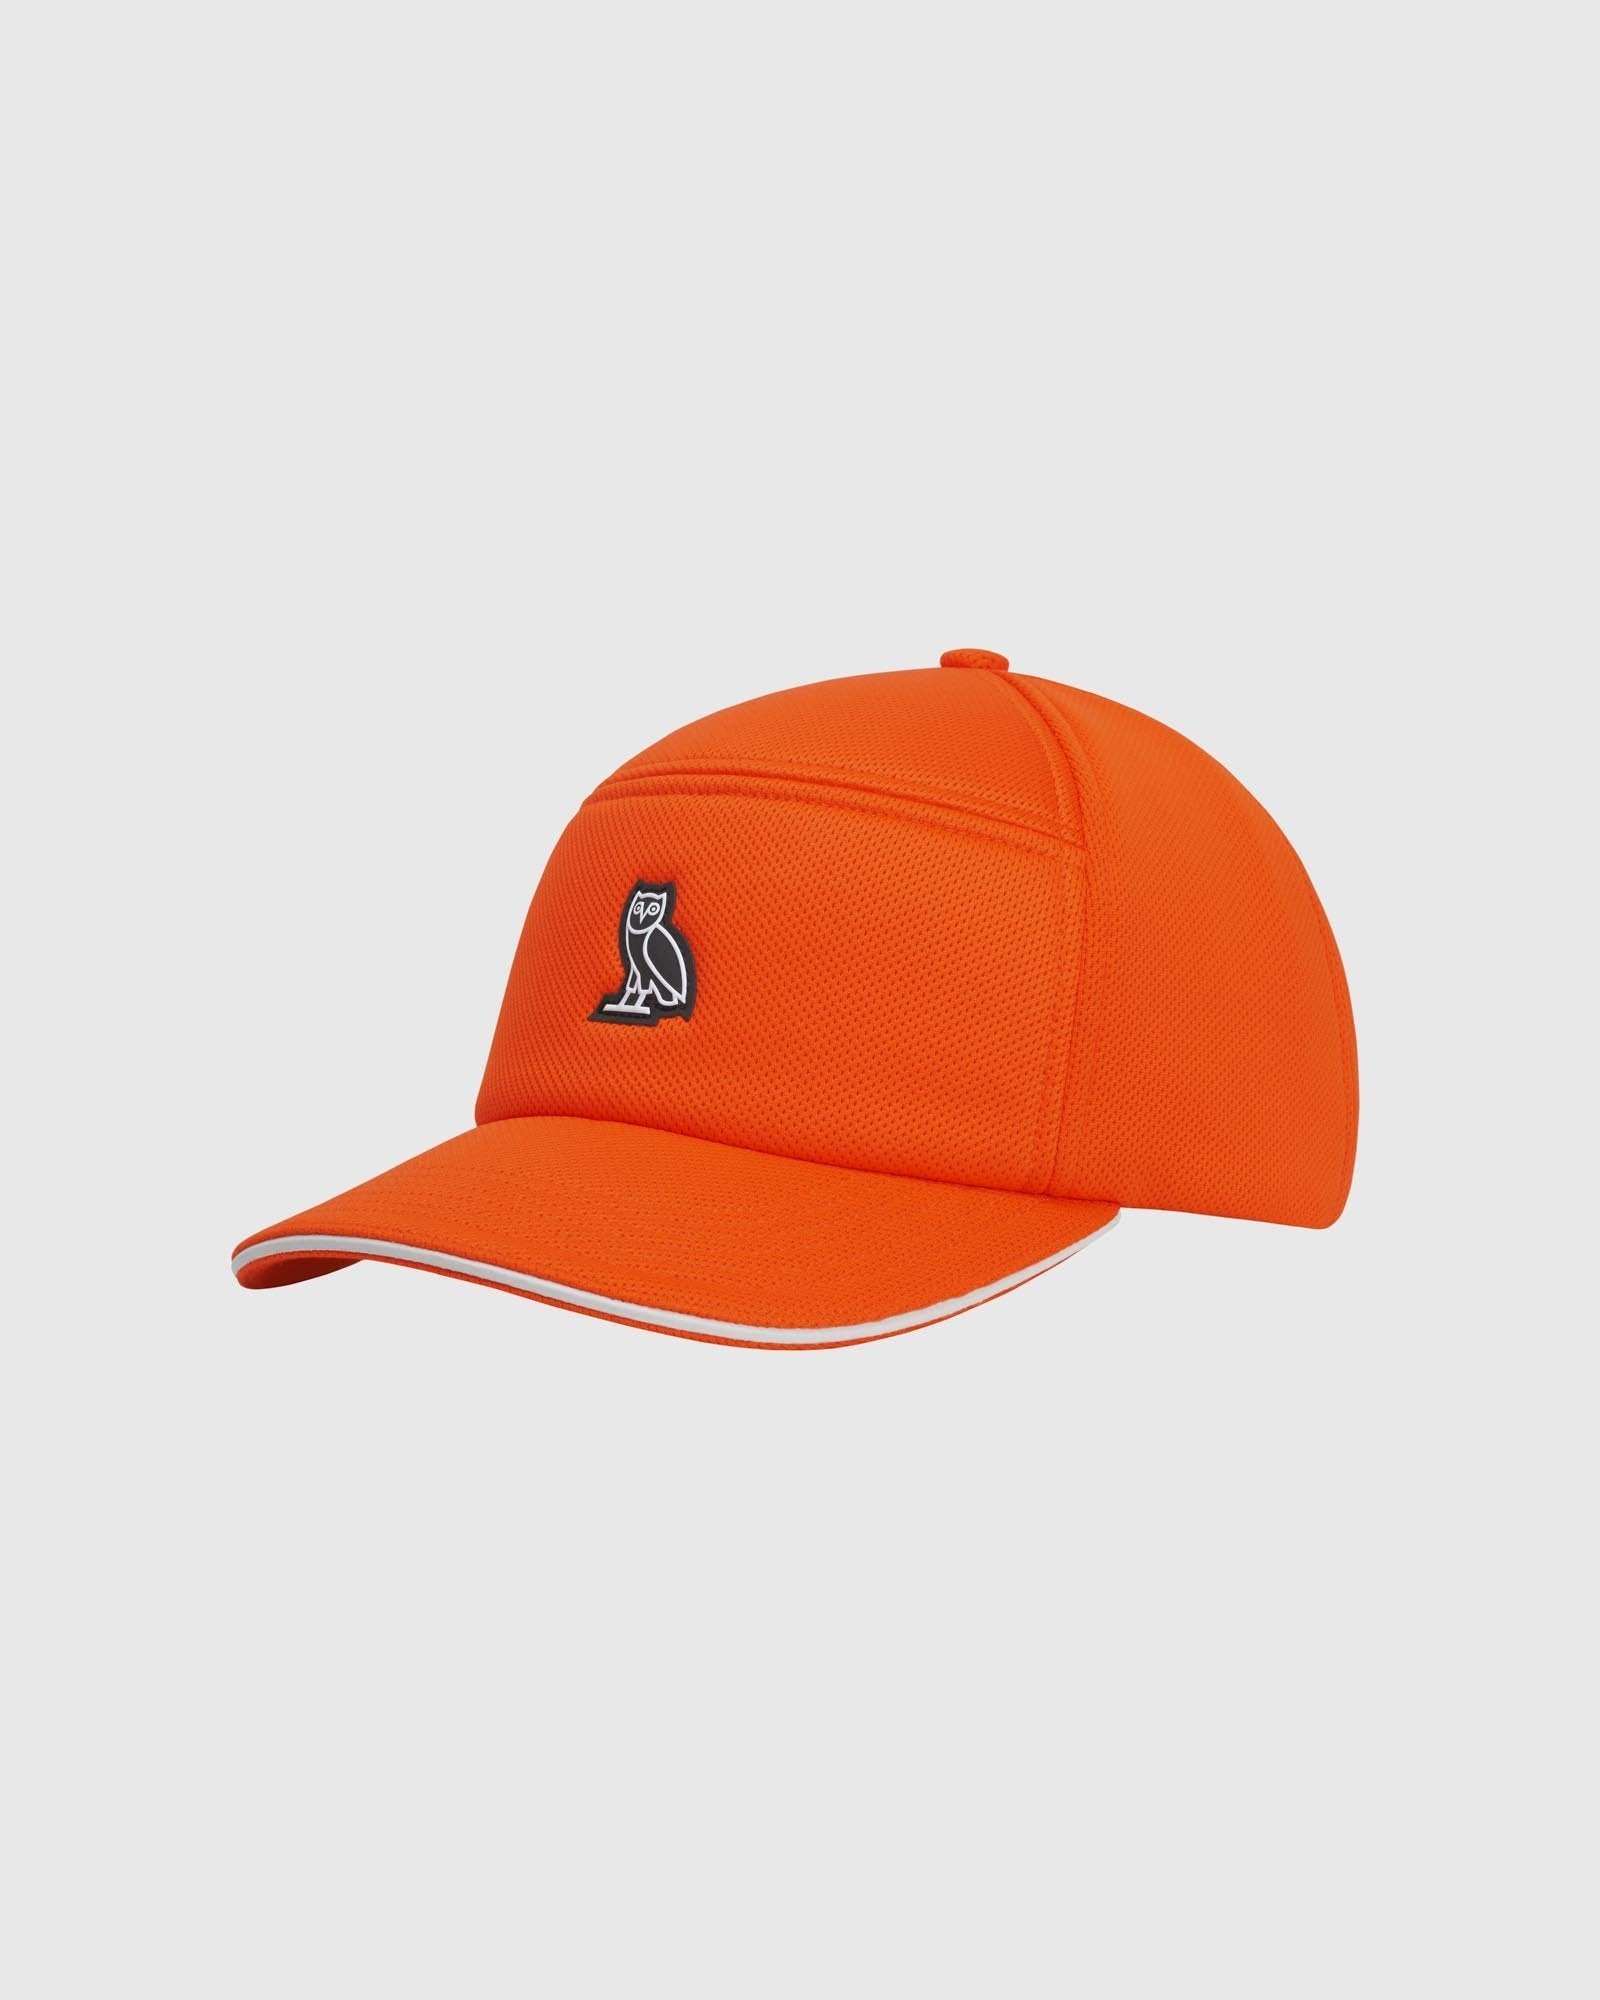 BIRDSEYE 6-PANEL CAP - ORANGE IMAGE #3